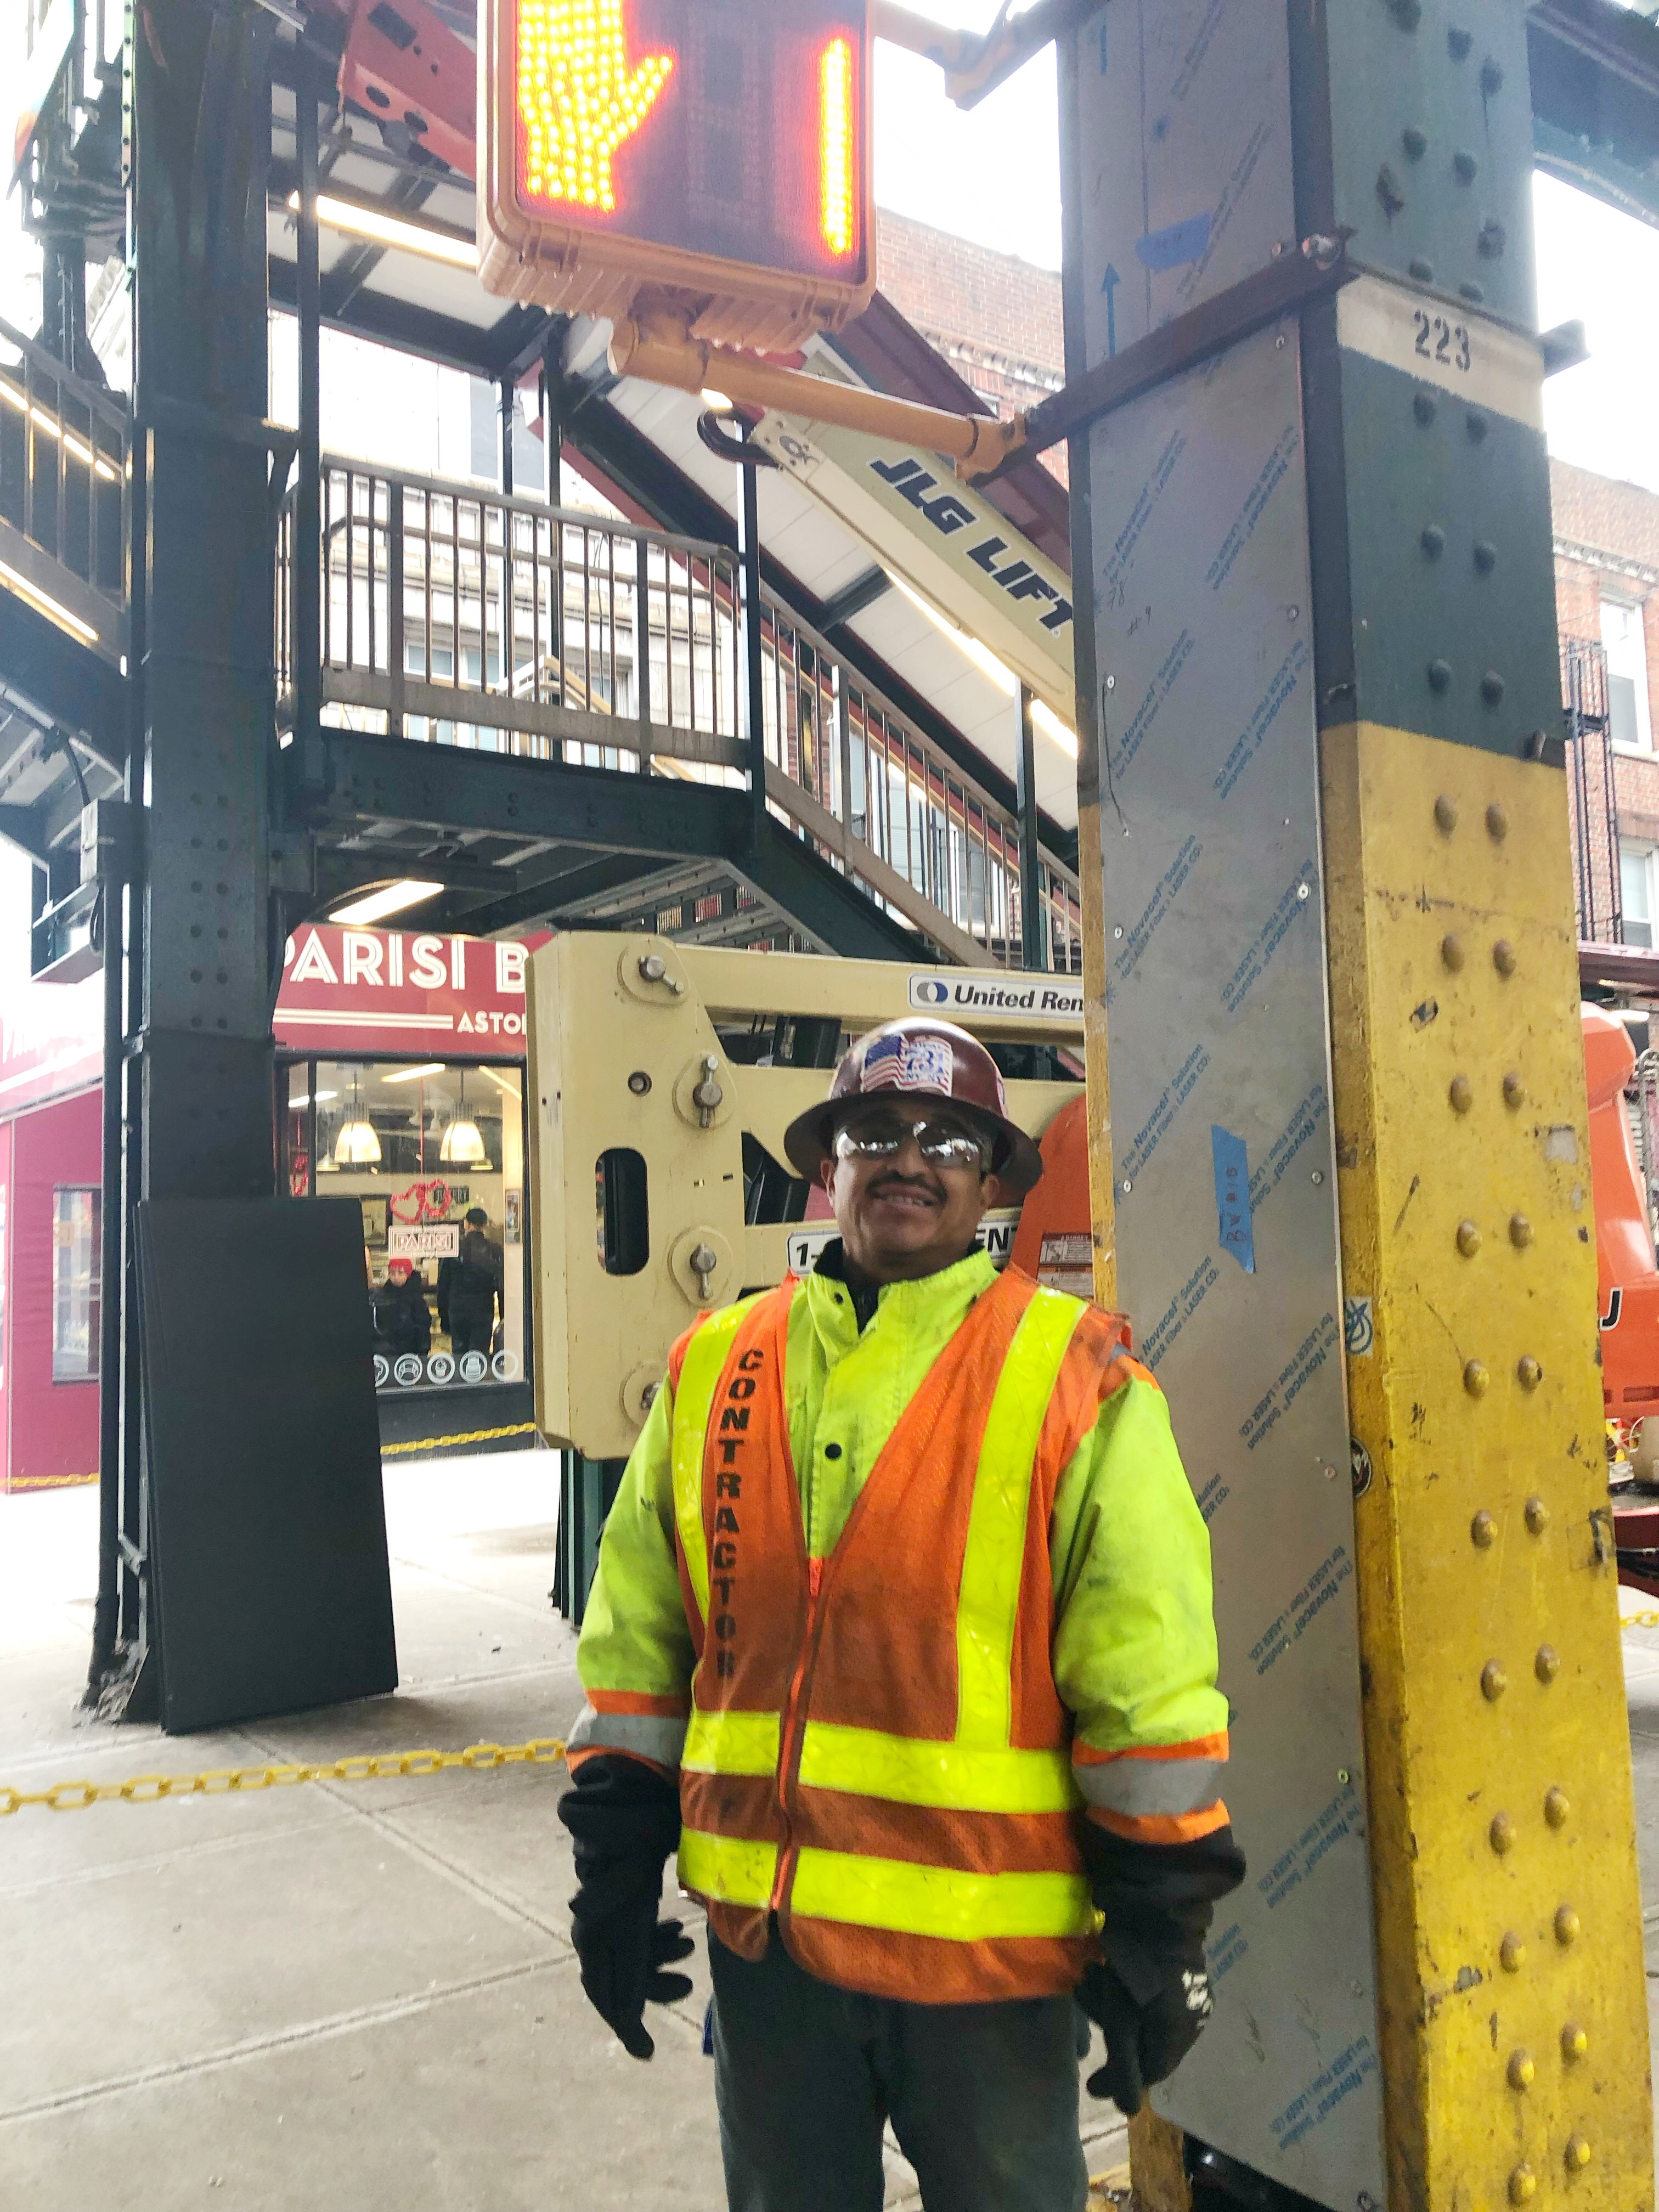 Broadway Station reopening January 23